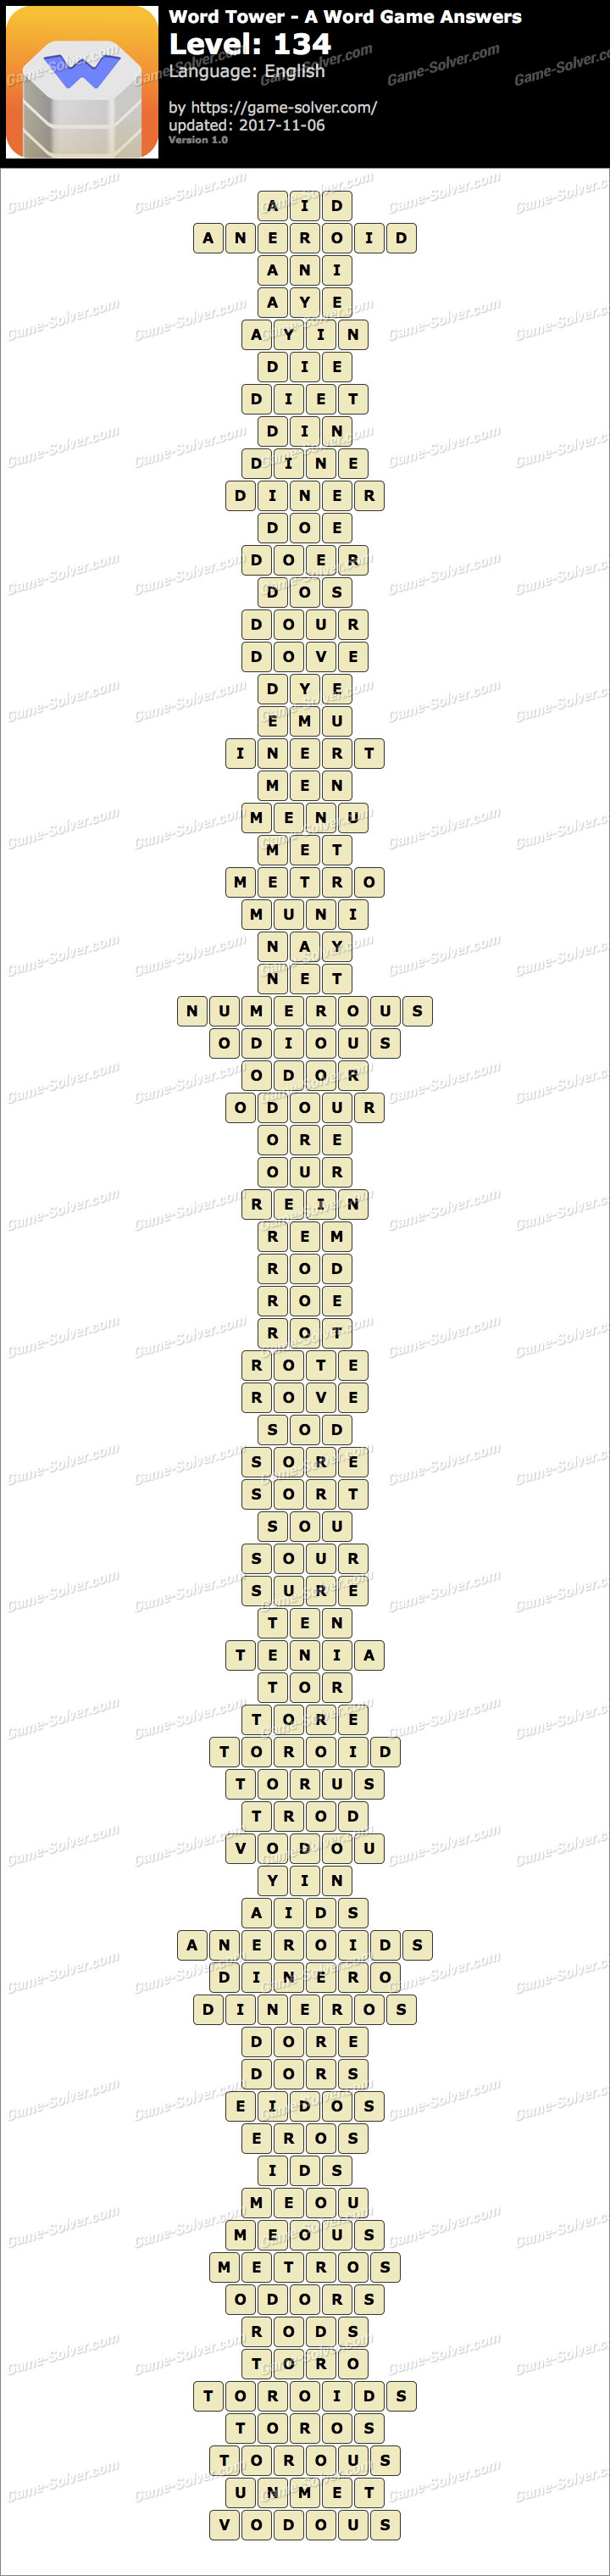 Word Tower Level 134 Answers